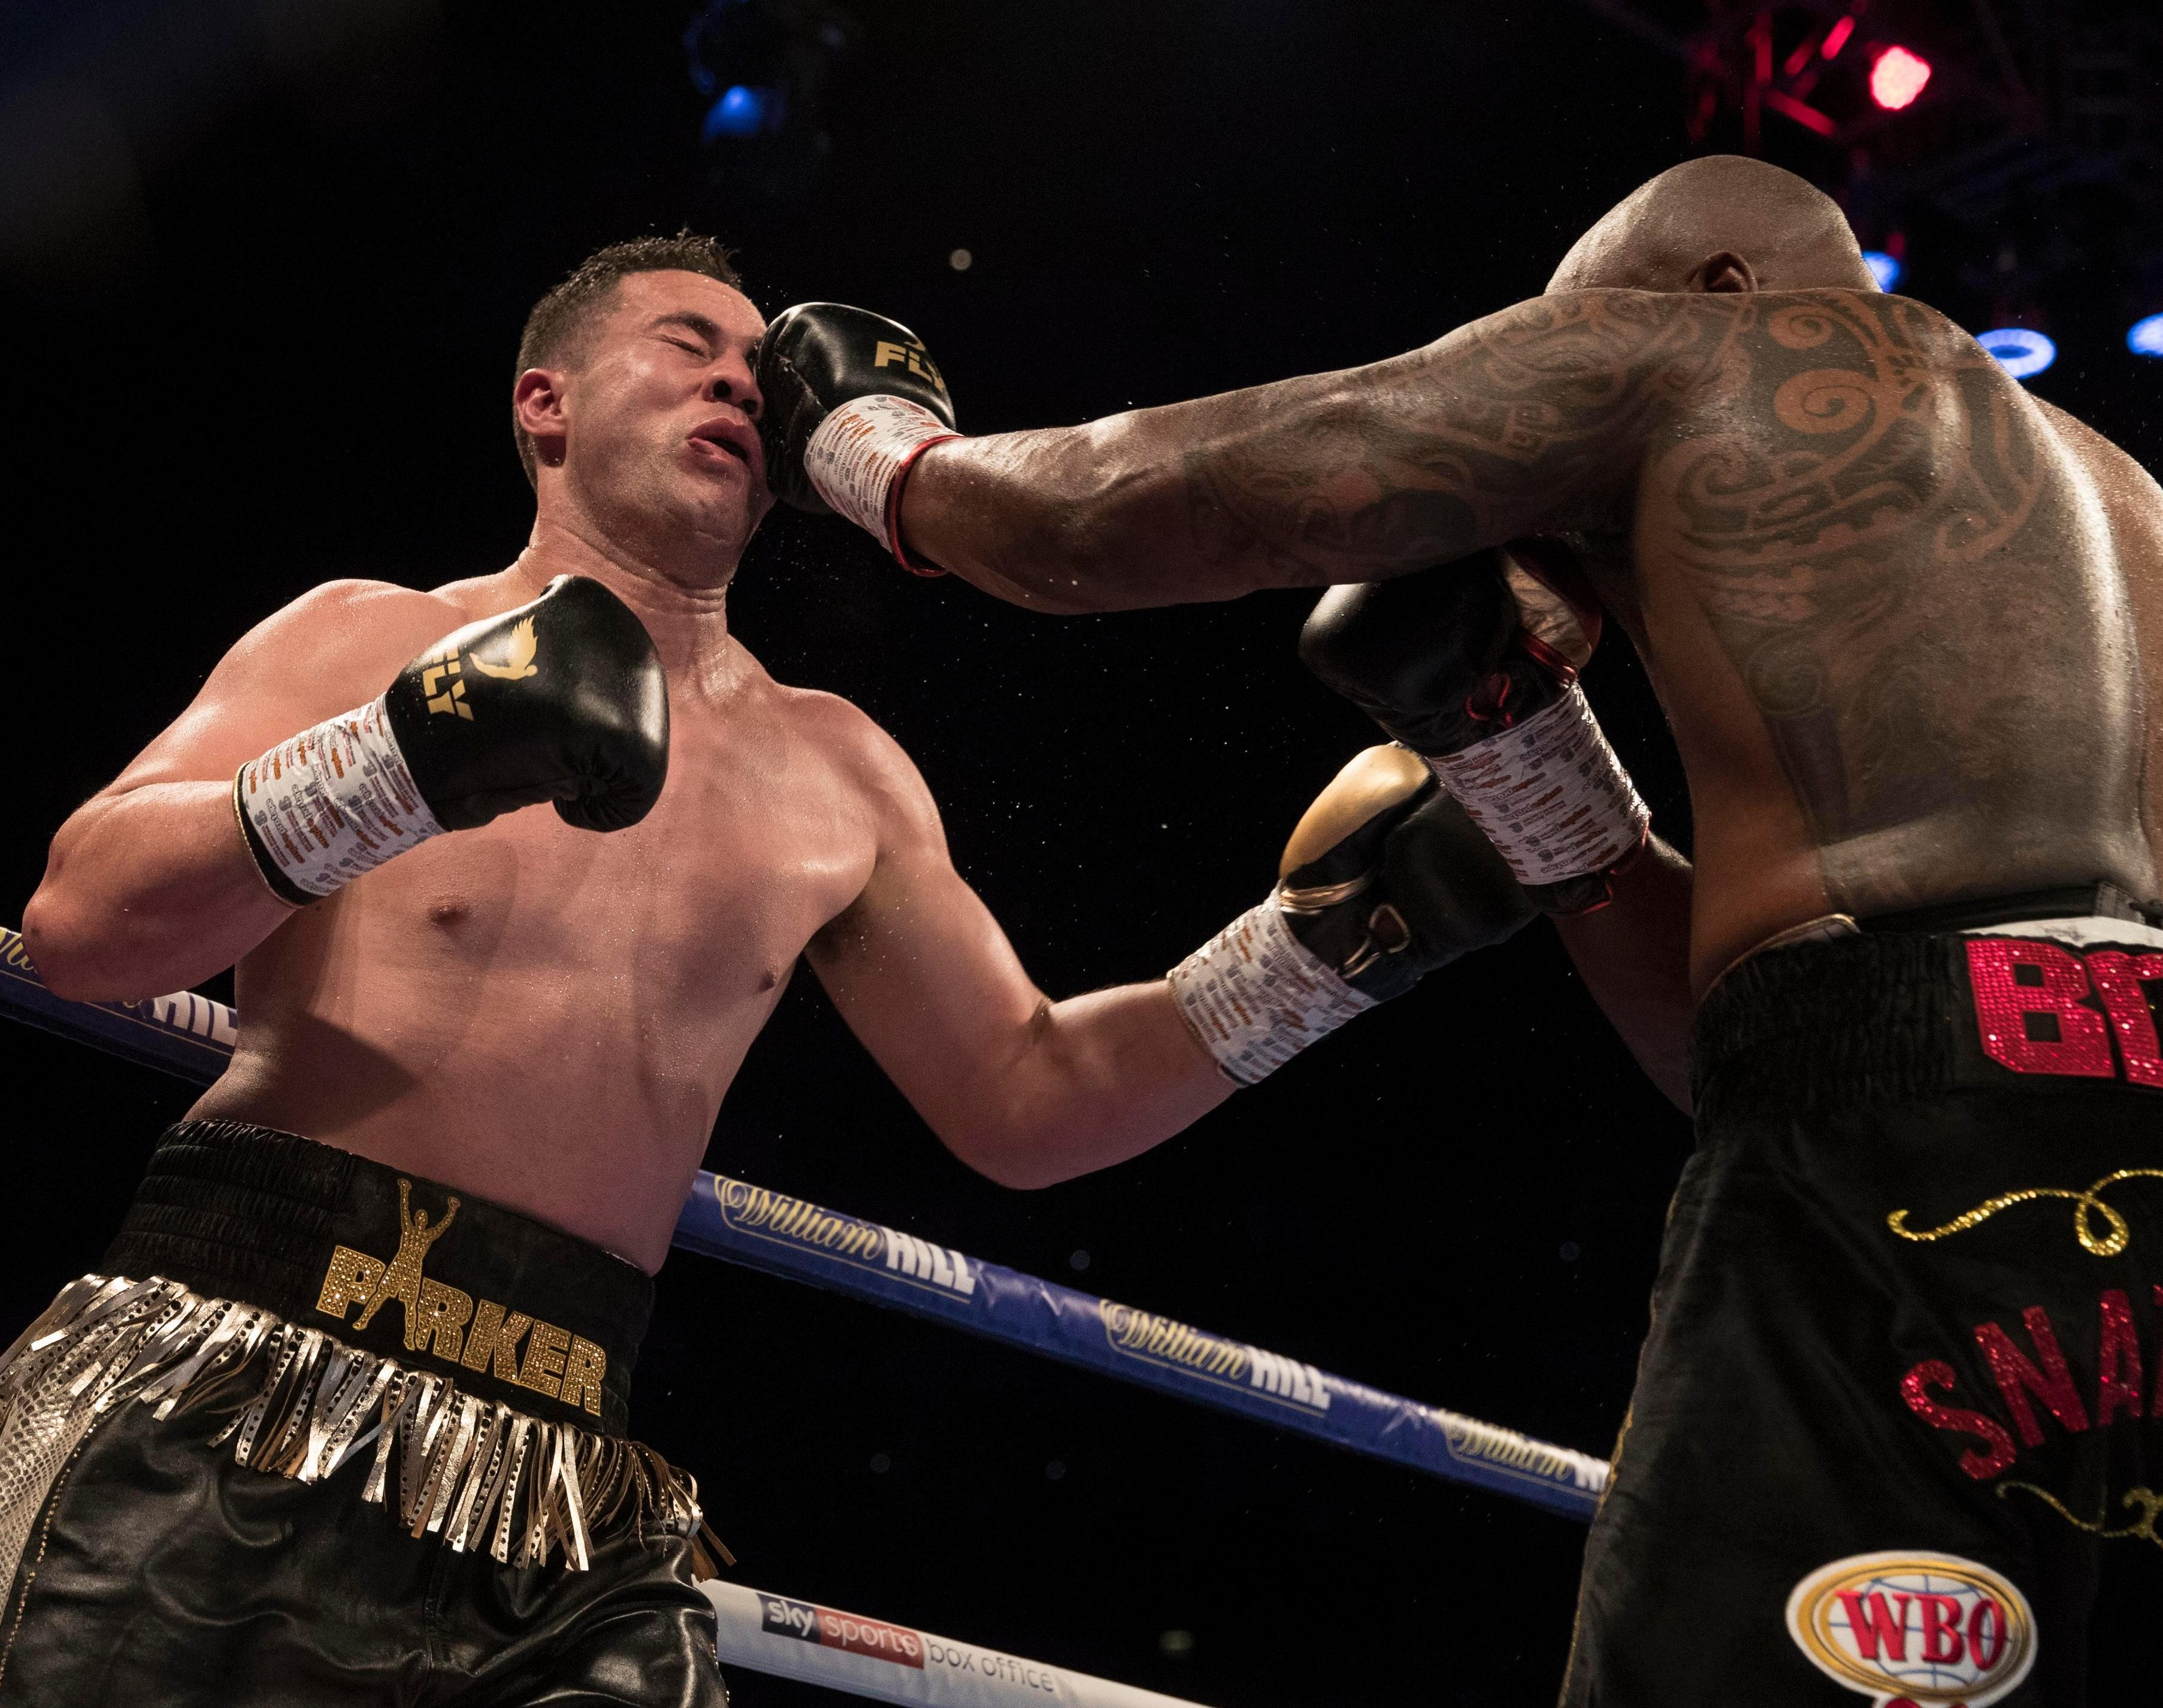 Dillian Whyte dominated the punches in the ring before Parker's late onslaught